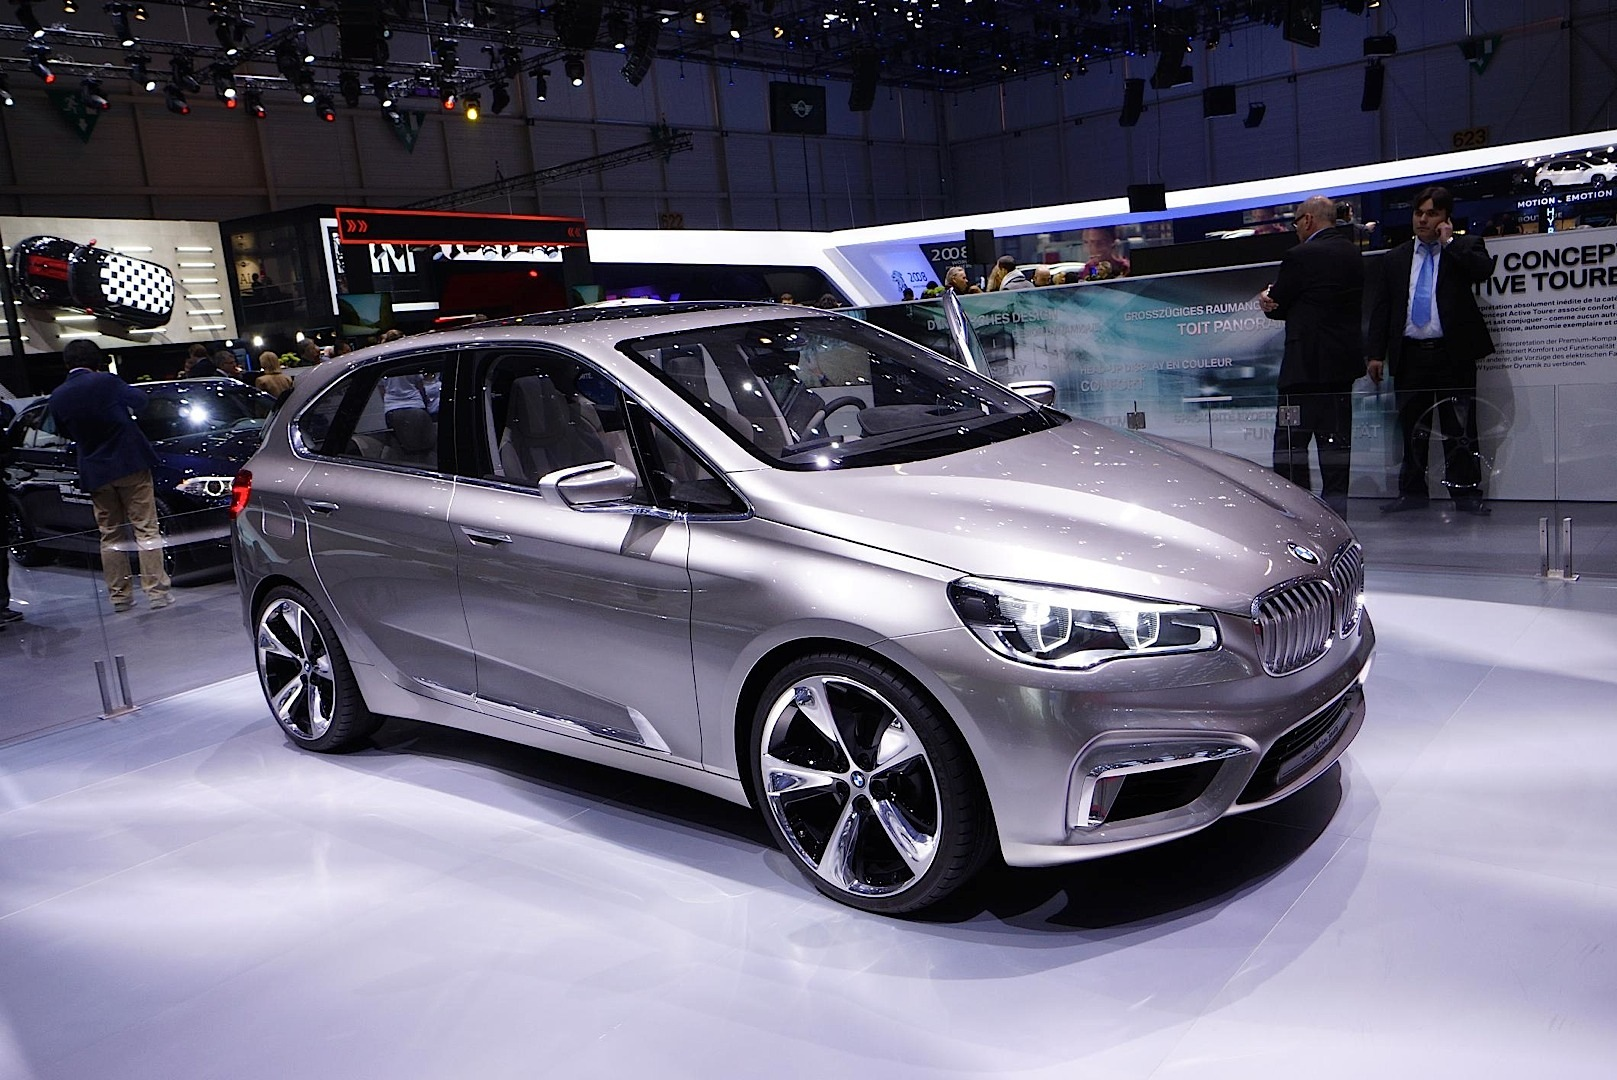 bmw active tourer concept present at geneva 2013 autoevolution. Black Bedroom Furniture Sets. Home Design Ideas